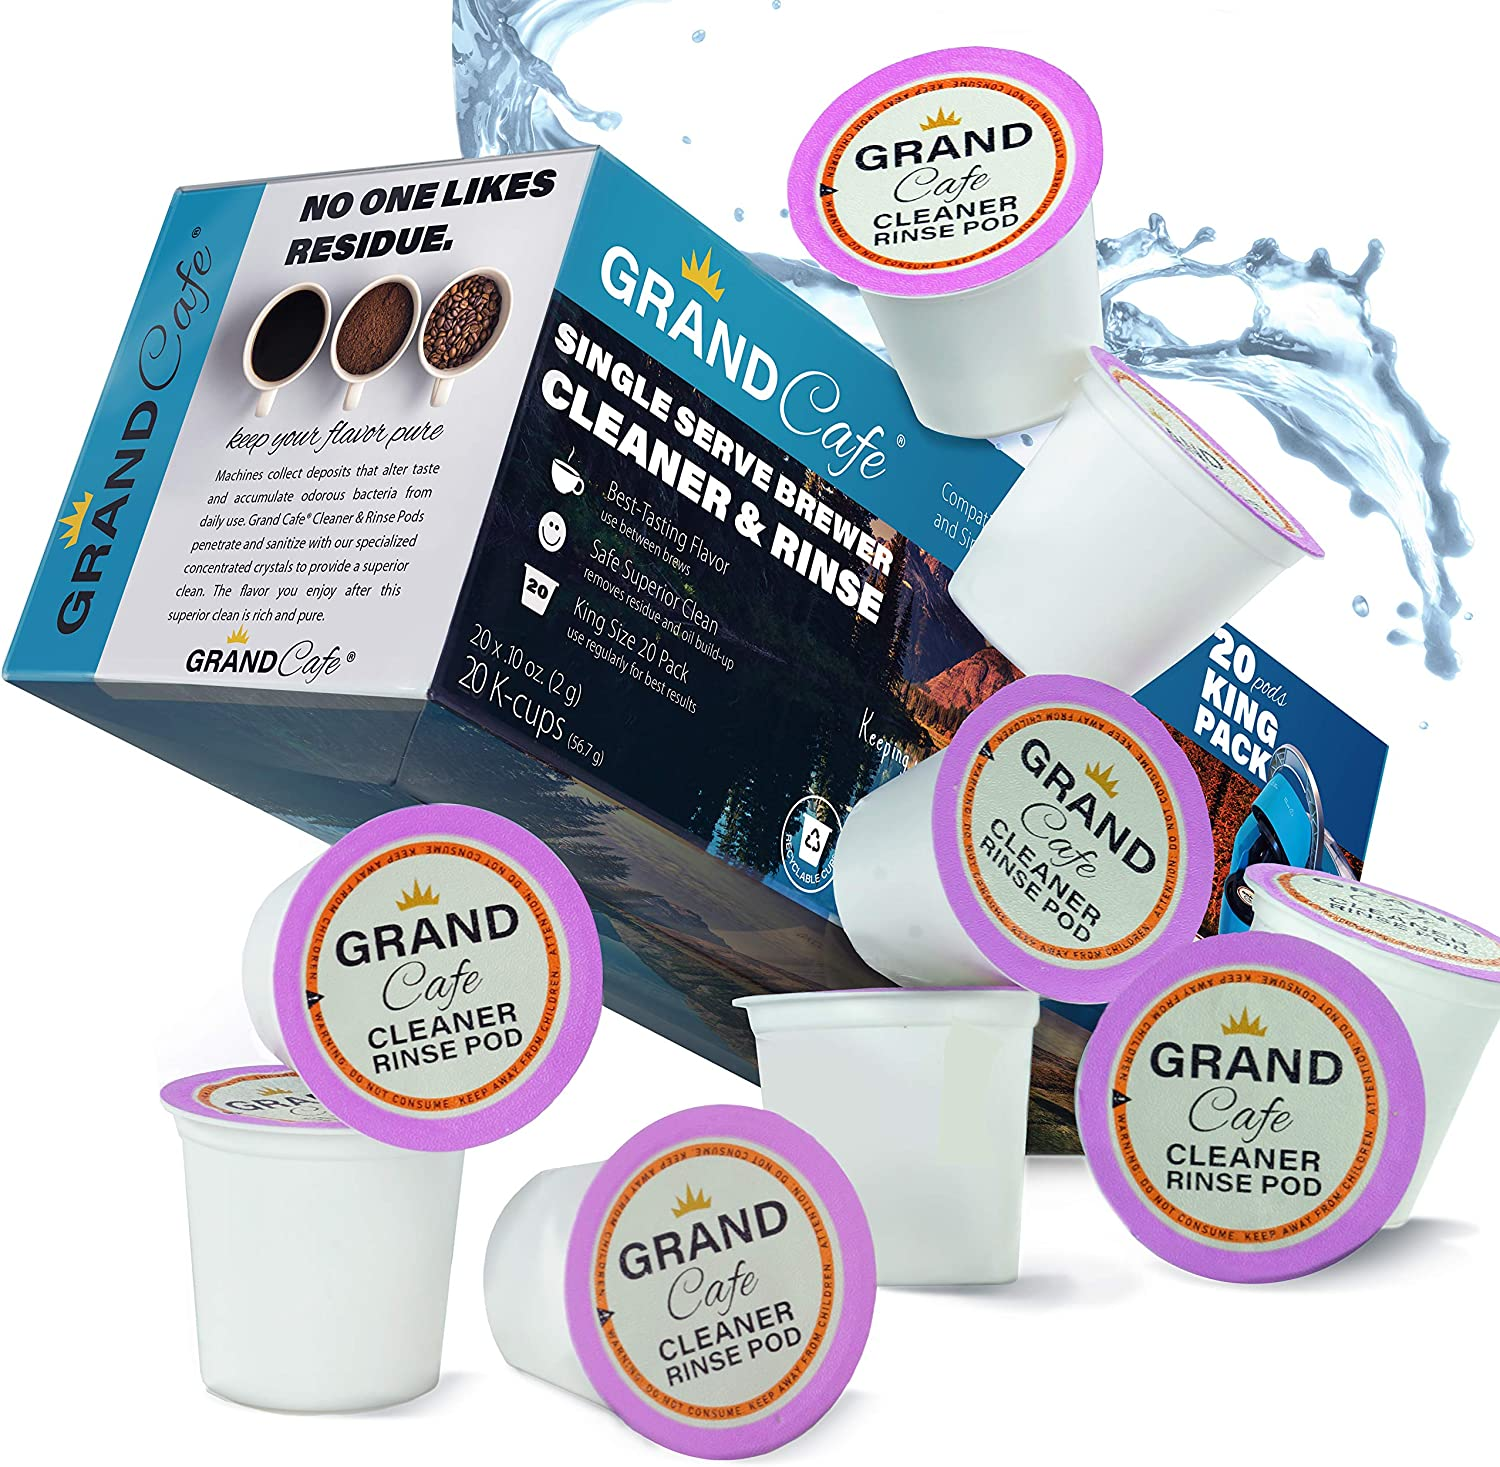 Grand Café - 20 Pack Keurig K-Cup Cleaner and Rinse for Single Serve Brewer Machines. Stain Remover, Non-Toxic - 2.0 Compatible